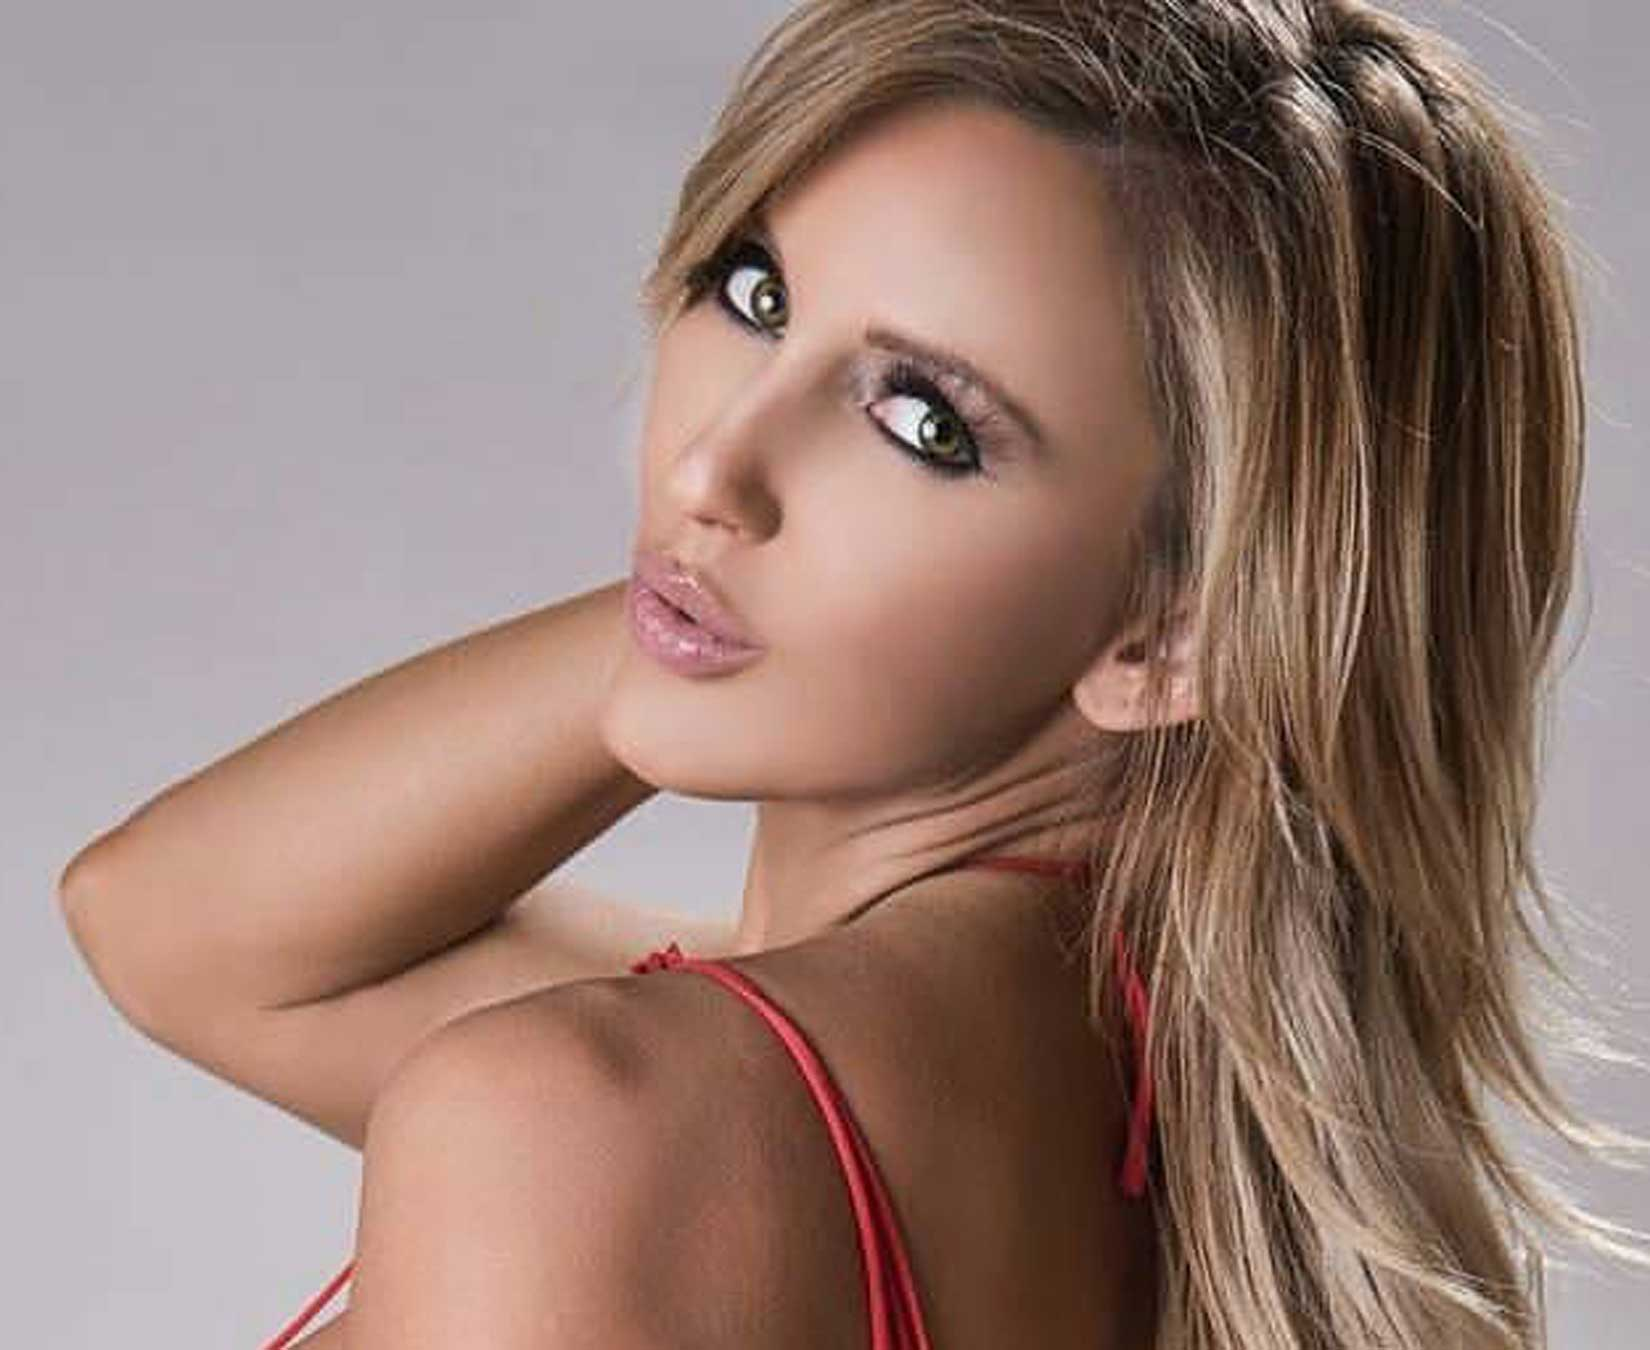 Amanda Paris Hot Look - Amanda Paris Net Worth, Pics, Wallpapers, Career and Biography